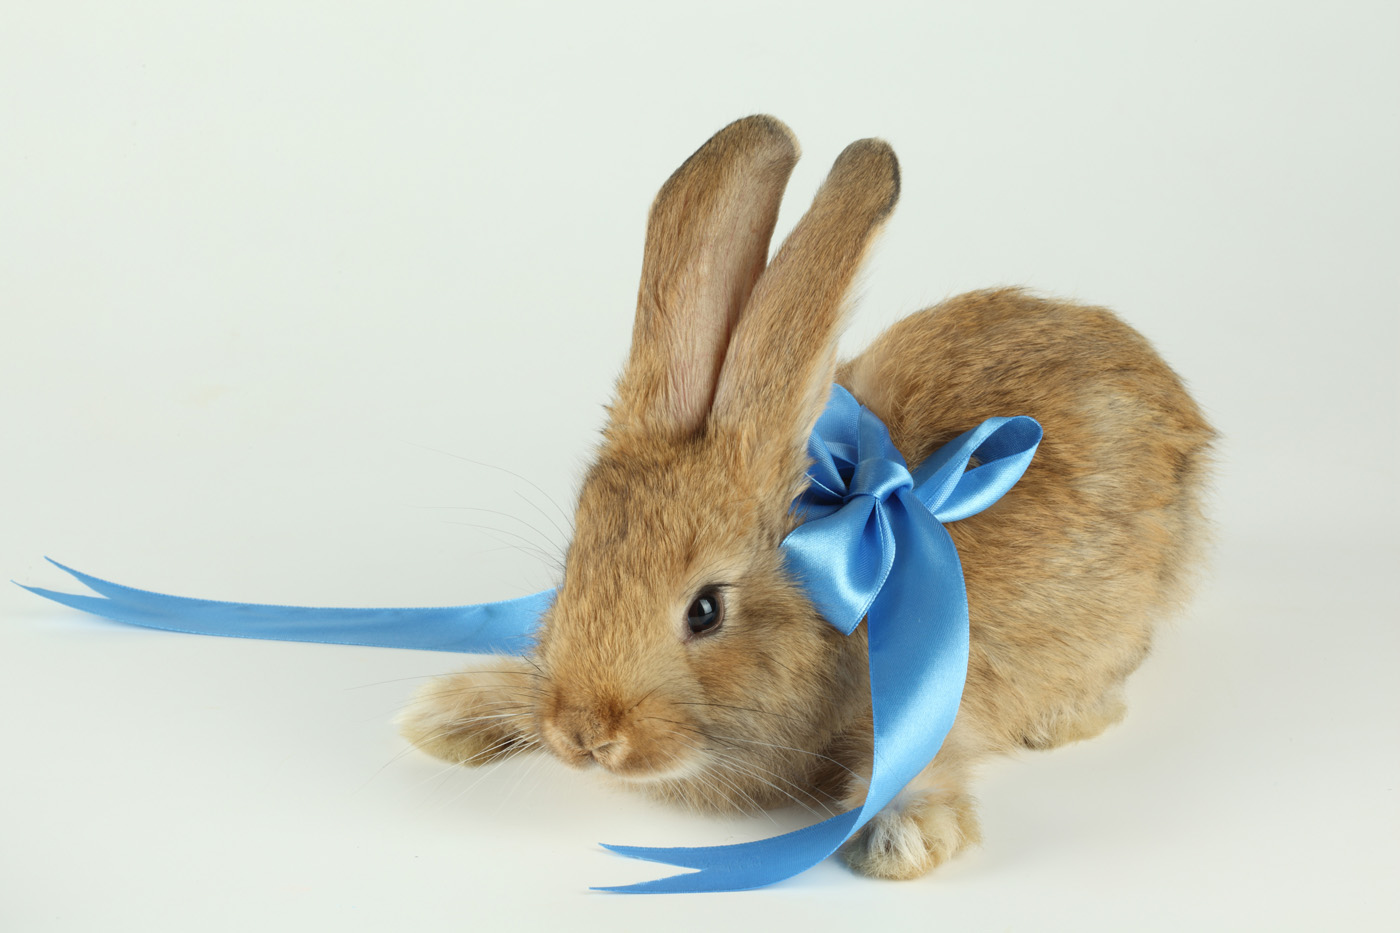 Cute rabbit with Ribbon 21121